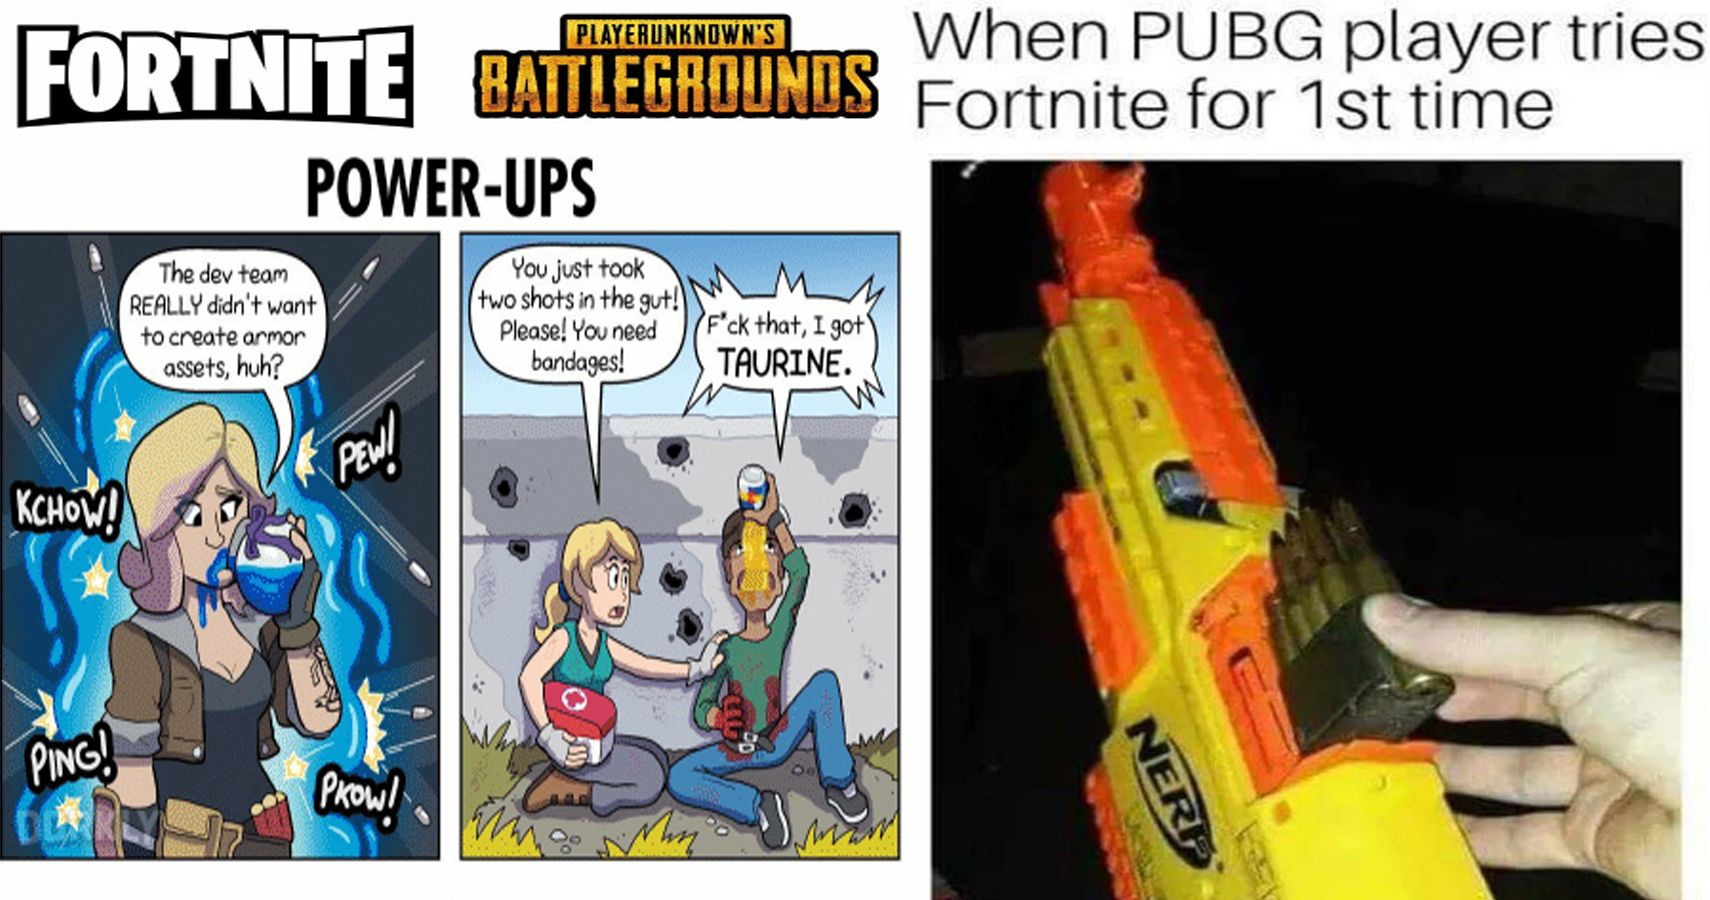 10 Fortnite Vs Pubg Memes That Are Too Hilarious For Words